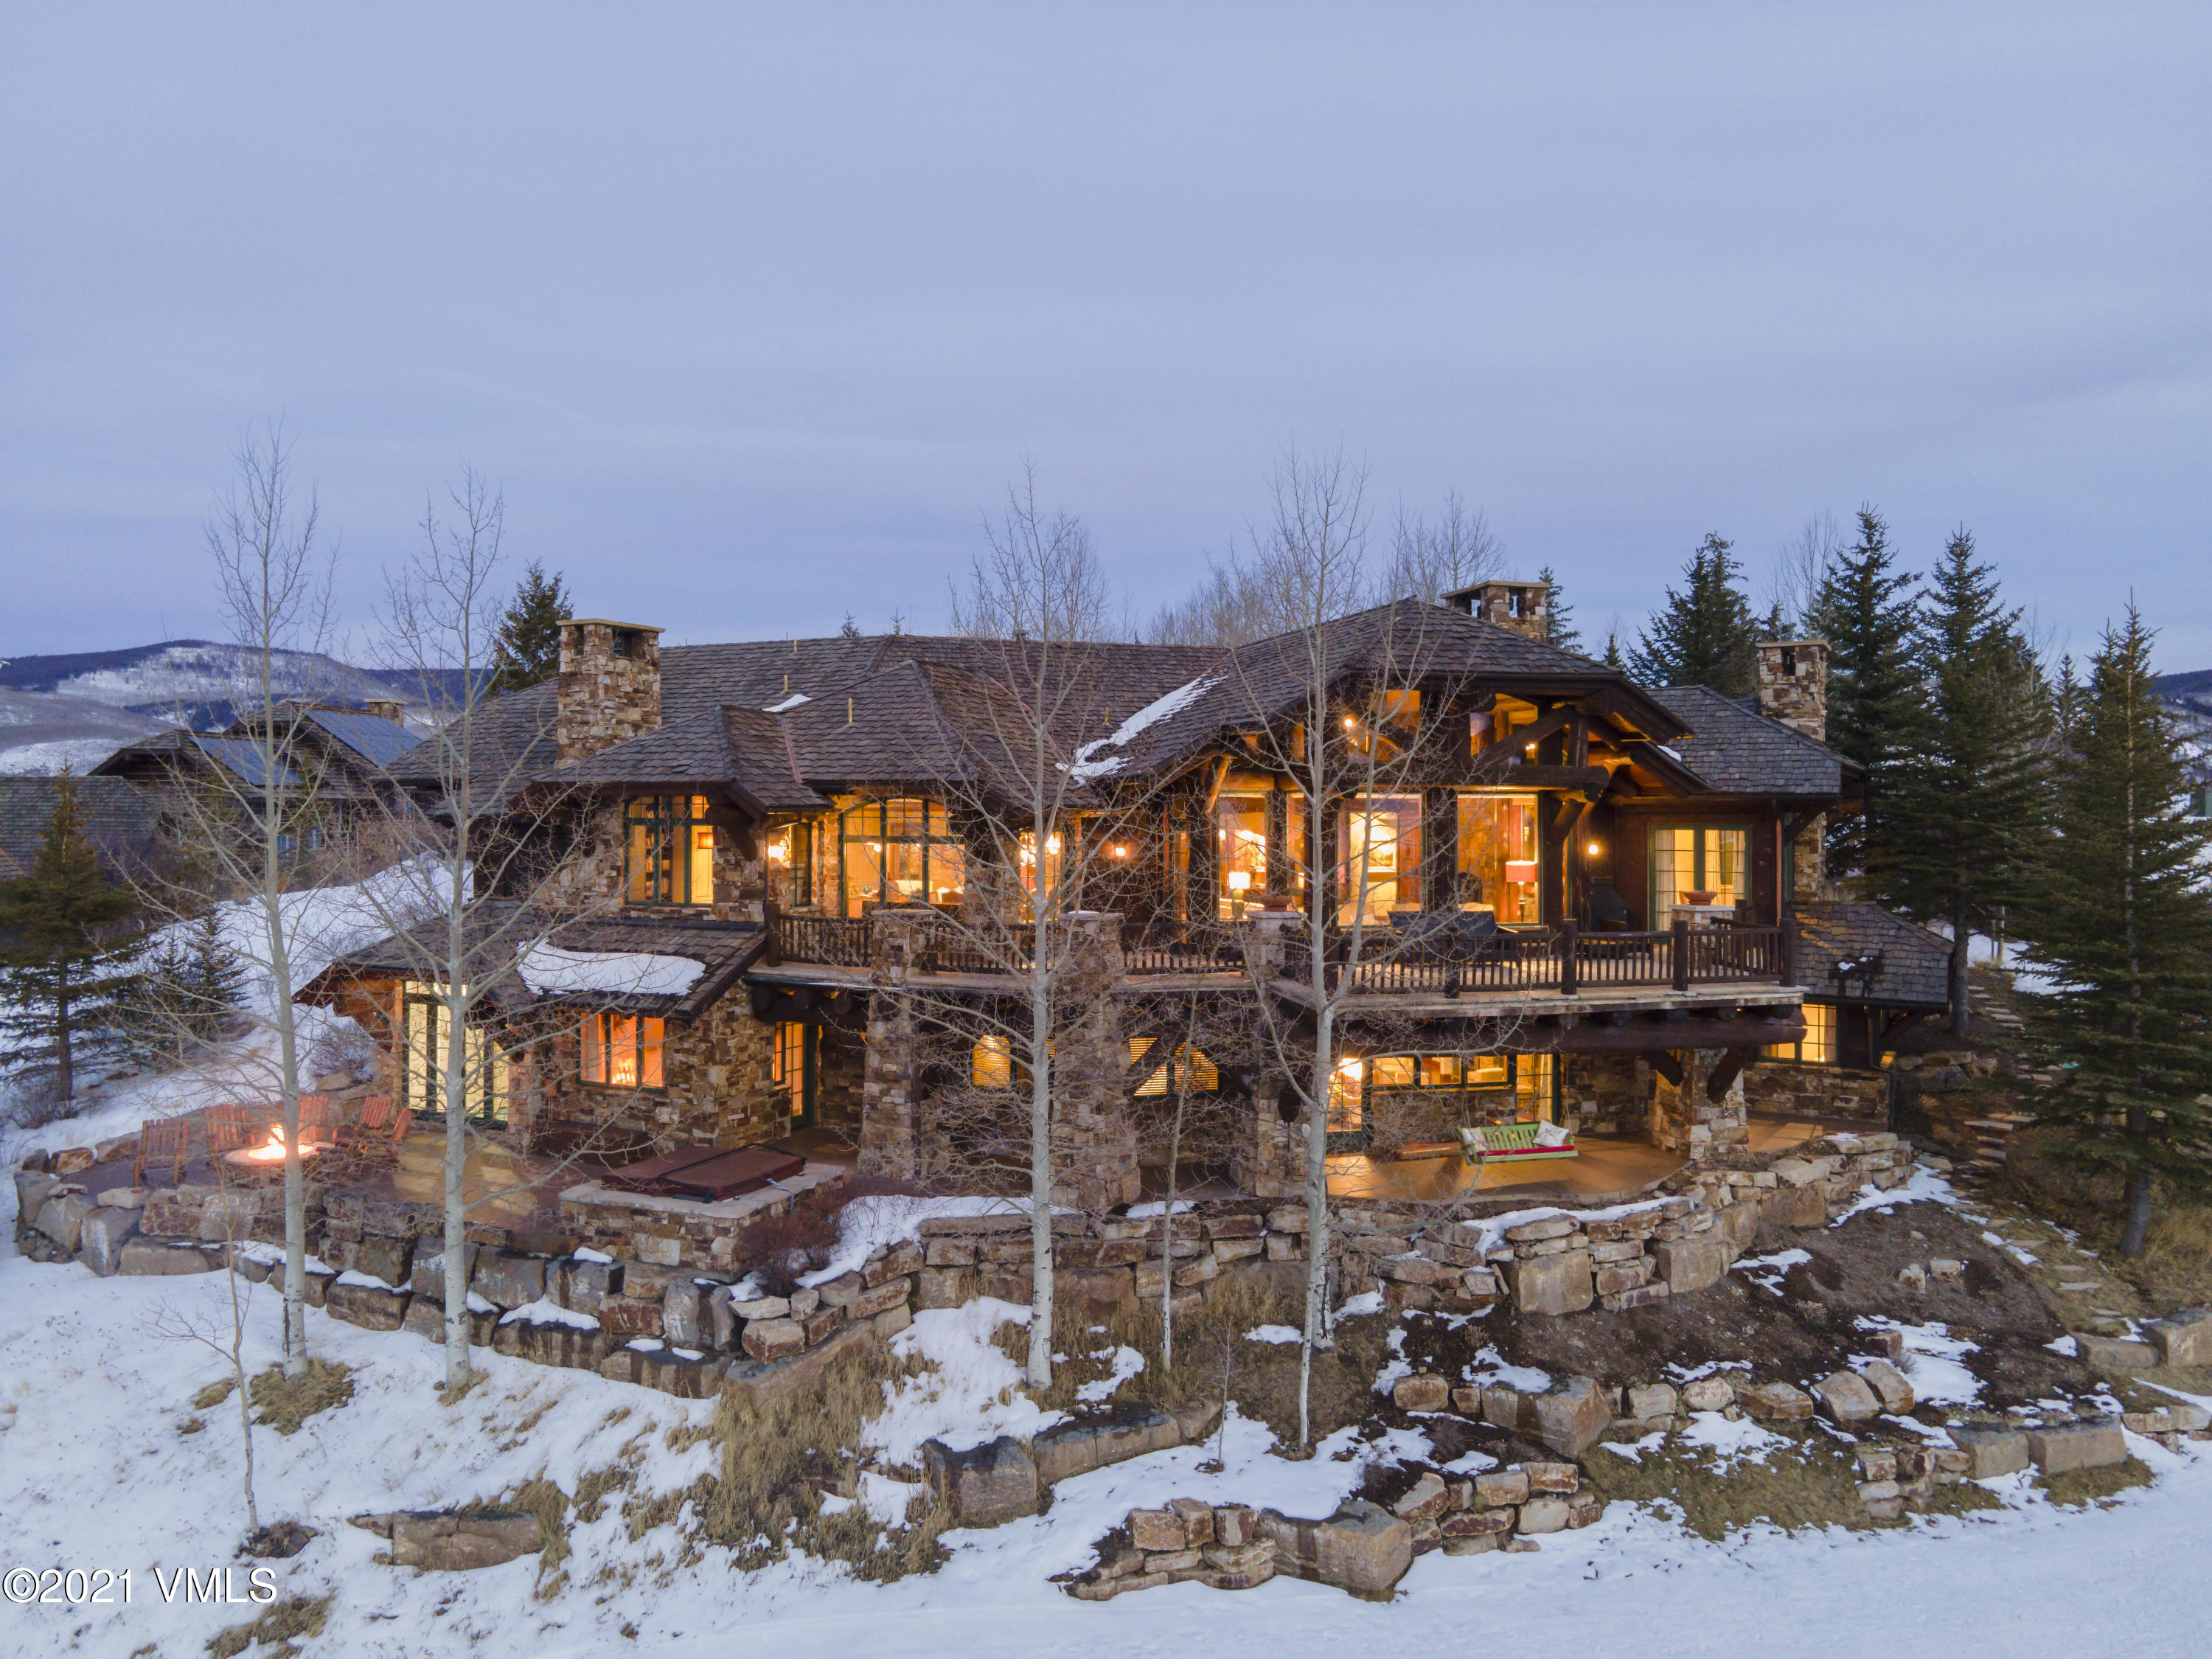 This home is a beautiful marriage of a Bachelor Gulch log home and mountain transitional decor; an extensive custom remodel has been completed since the home was originally built.  The main level offers a highly desired floor plan, with a master bedroom, a spacious open living room which flows easily into the kitchen and dining room. Elevator access takes you to the generous family room, and 3 additional customized guest bedrooms. Home sleeps up to 18.One of very few homes in Bachelor Gulch to offer an indoor swimming pool, a steam room, sauna and workout studio. Tucked away on the upper level is a charming guest suite, nursery and play loft for children or grandchildren. Recently expanded outdoor balconies and patios are a magnificent place for family gatherings and spectacularoutdoor living.Sensational 270-degree sunset views capture your attention from the moment you enter this warm and inviting home. Watching the active landscape of skiers during the daylight hours and the lights of the Bachelor Gulch Village during the evening hours is very reminiscent of the quaint ski villages in Europe.  'Leave the Beav' ski-way is directly accessible from your private ski room to the lower Beaver Creek ski lift and allows quick access to either the upper Bachelor Gulch or the lower Bachelor Gulch Village ski lift's, the ski-in has a short easy walk home.